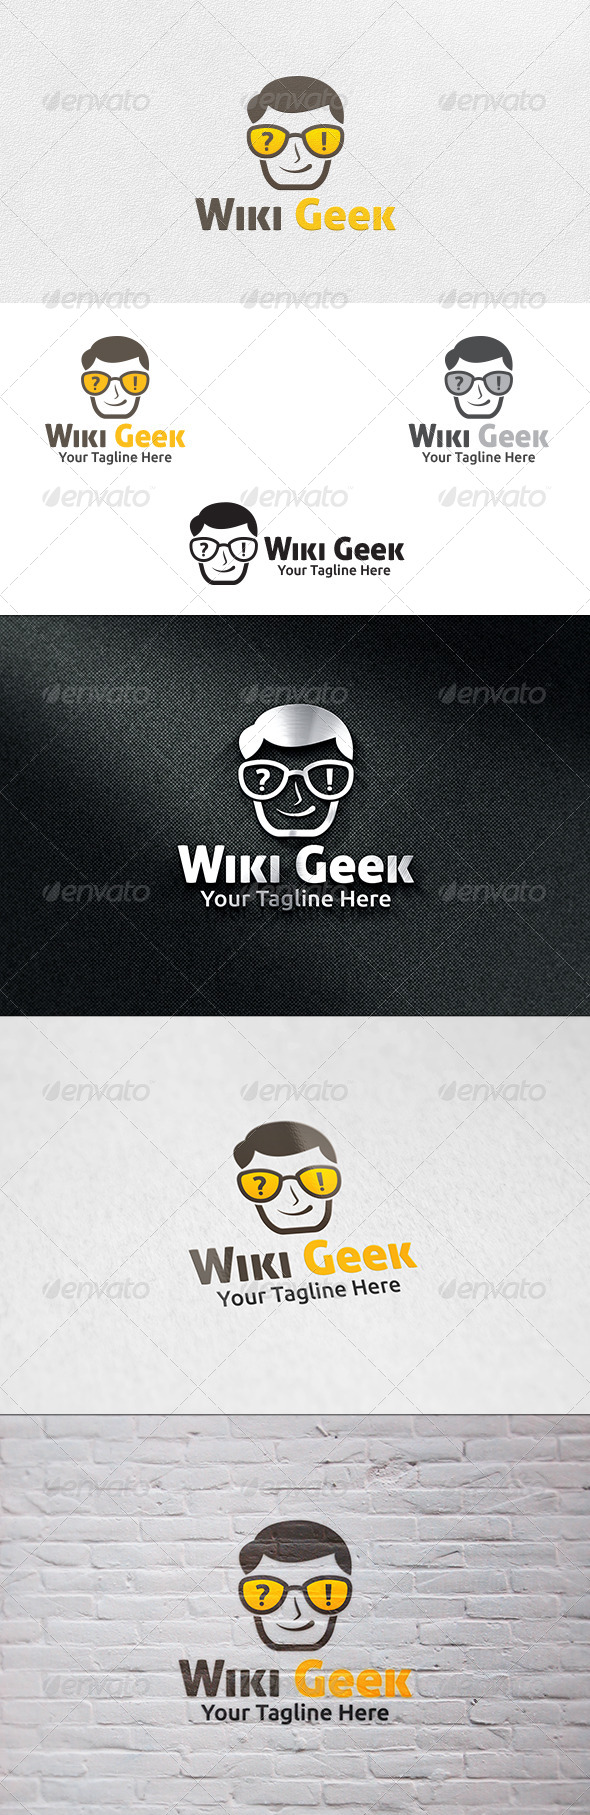 GraphicRiver Wiki Geek Logo Template 7012883